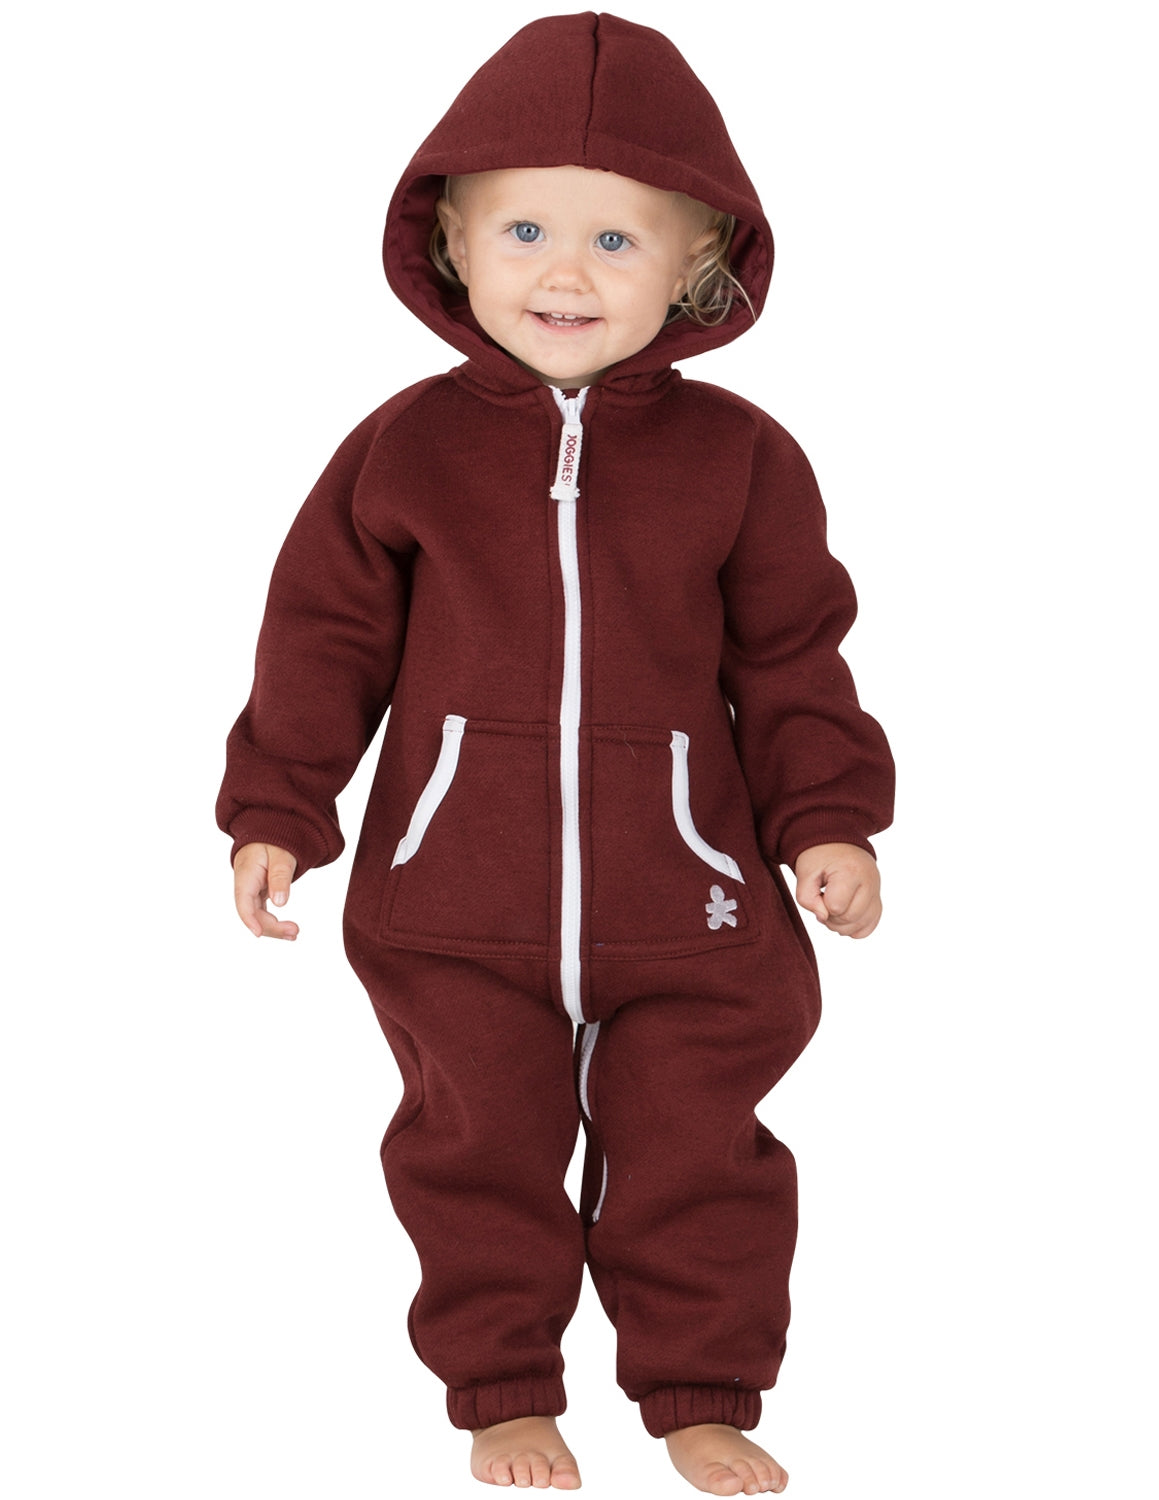 Burgundy Infant Footless Hoodie Onesie